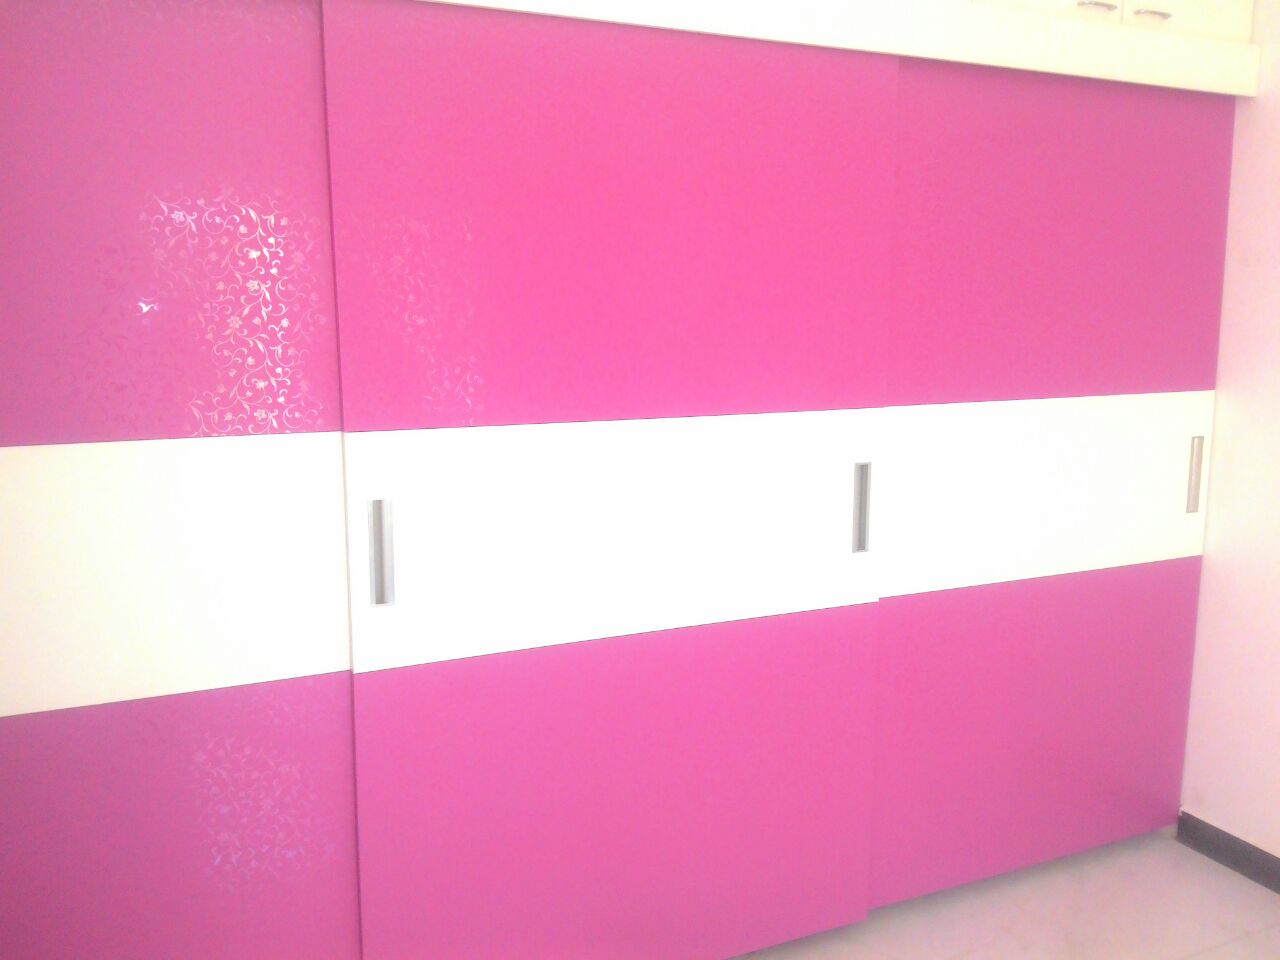 New Wardrobe Designs Finished Today On 23 07 2017 In Mr Ravindhran S Parthasarathy House Perungudi Chennai The Cute Pink Accompanied With White Was